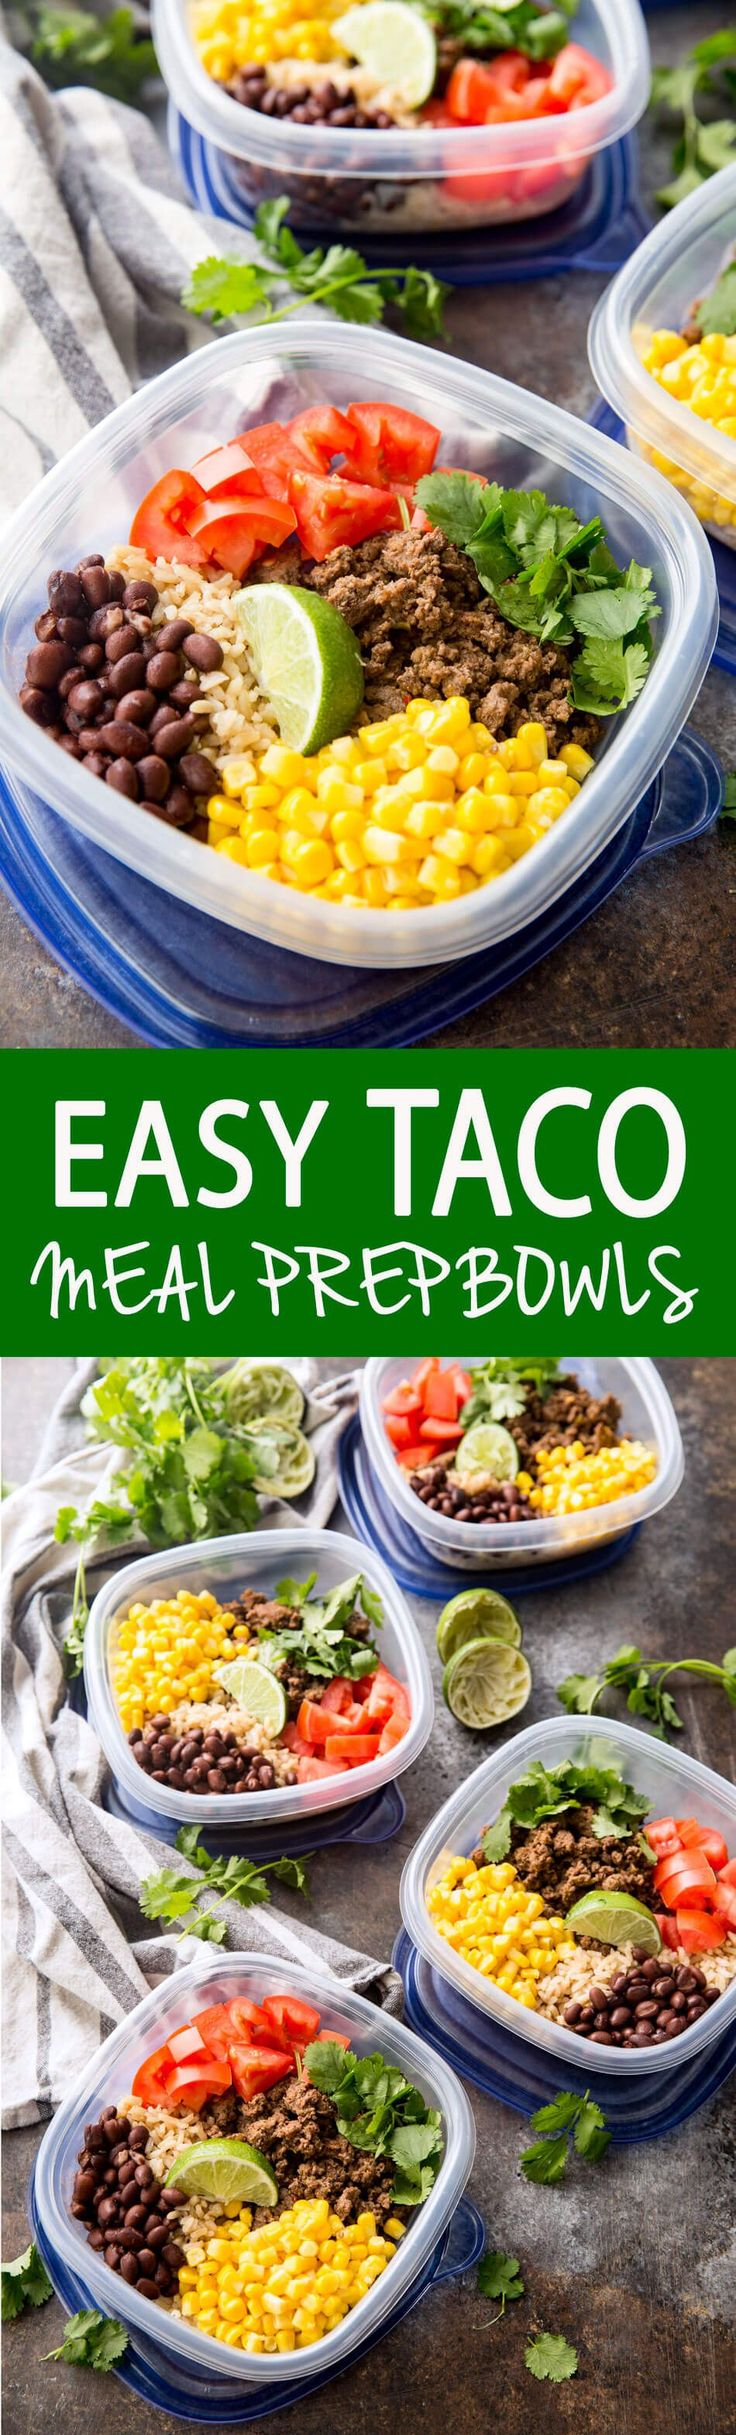 Easy Taco Meal Prep Bowls with Salsa Verde Beef and extras like corn, tomatoes, cilantro, and black beans. I swear these are better on the second day!